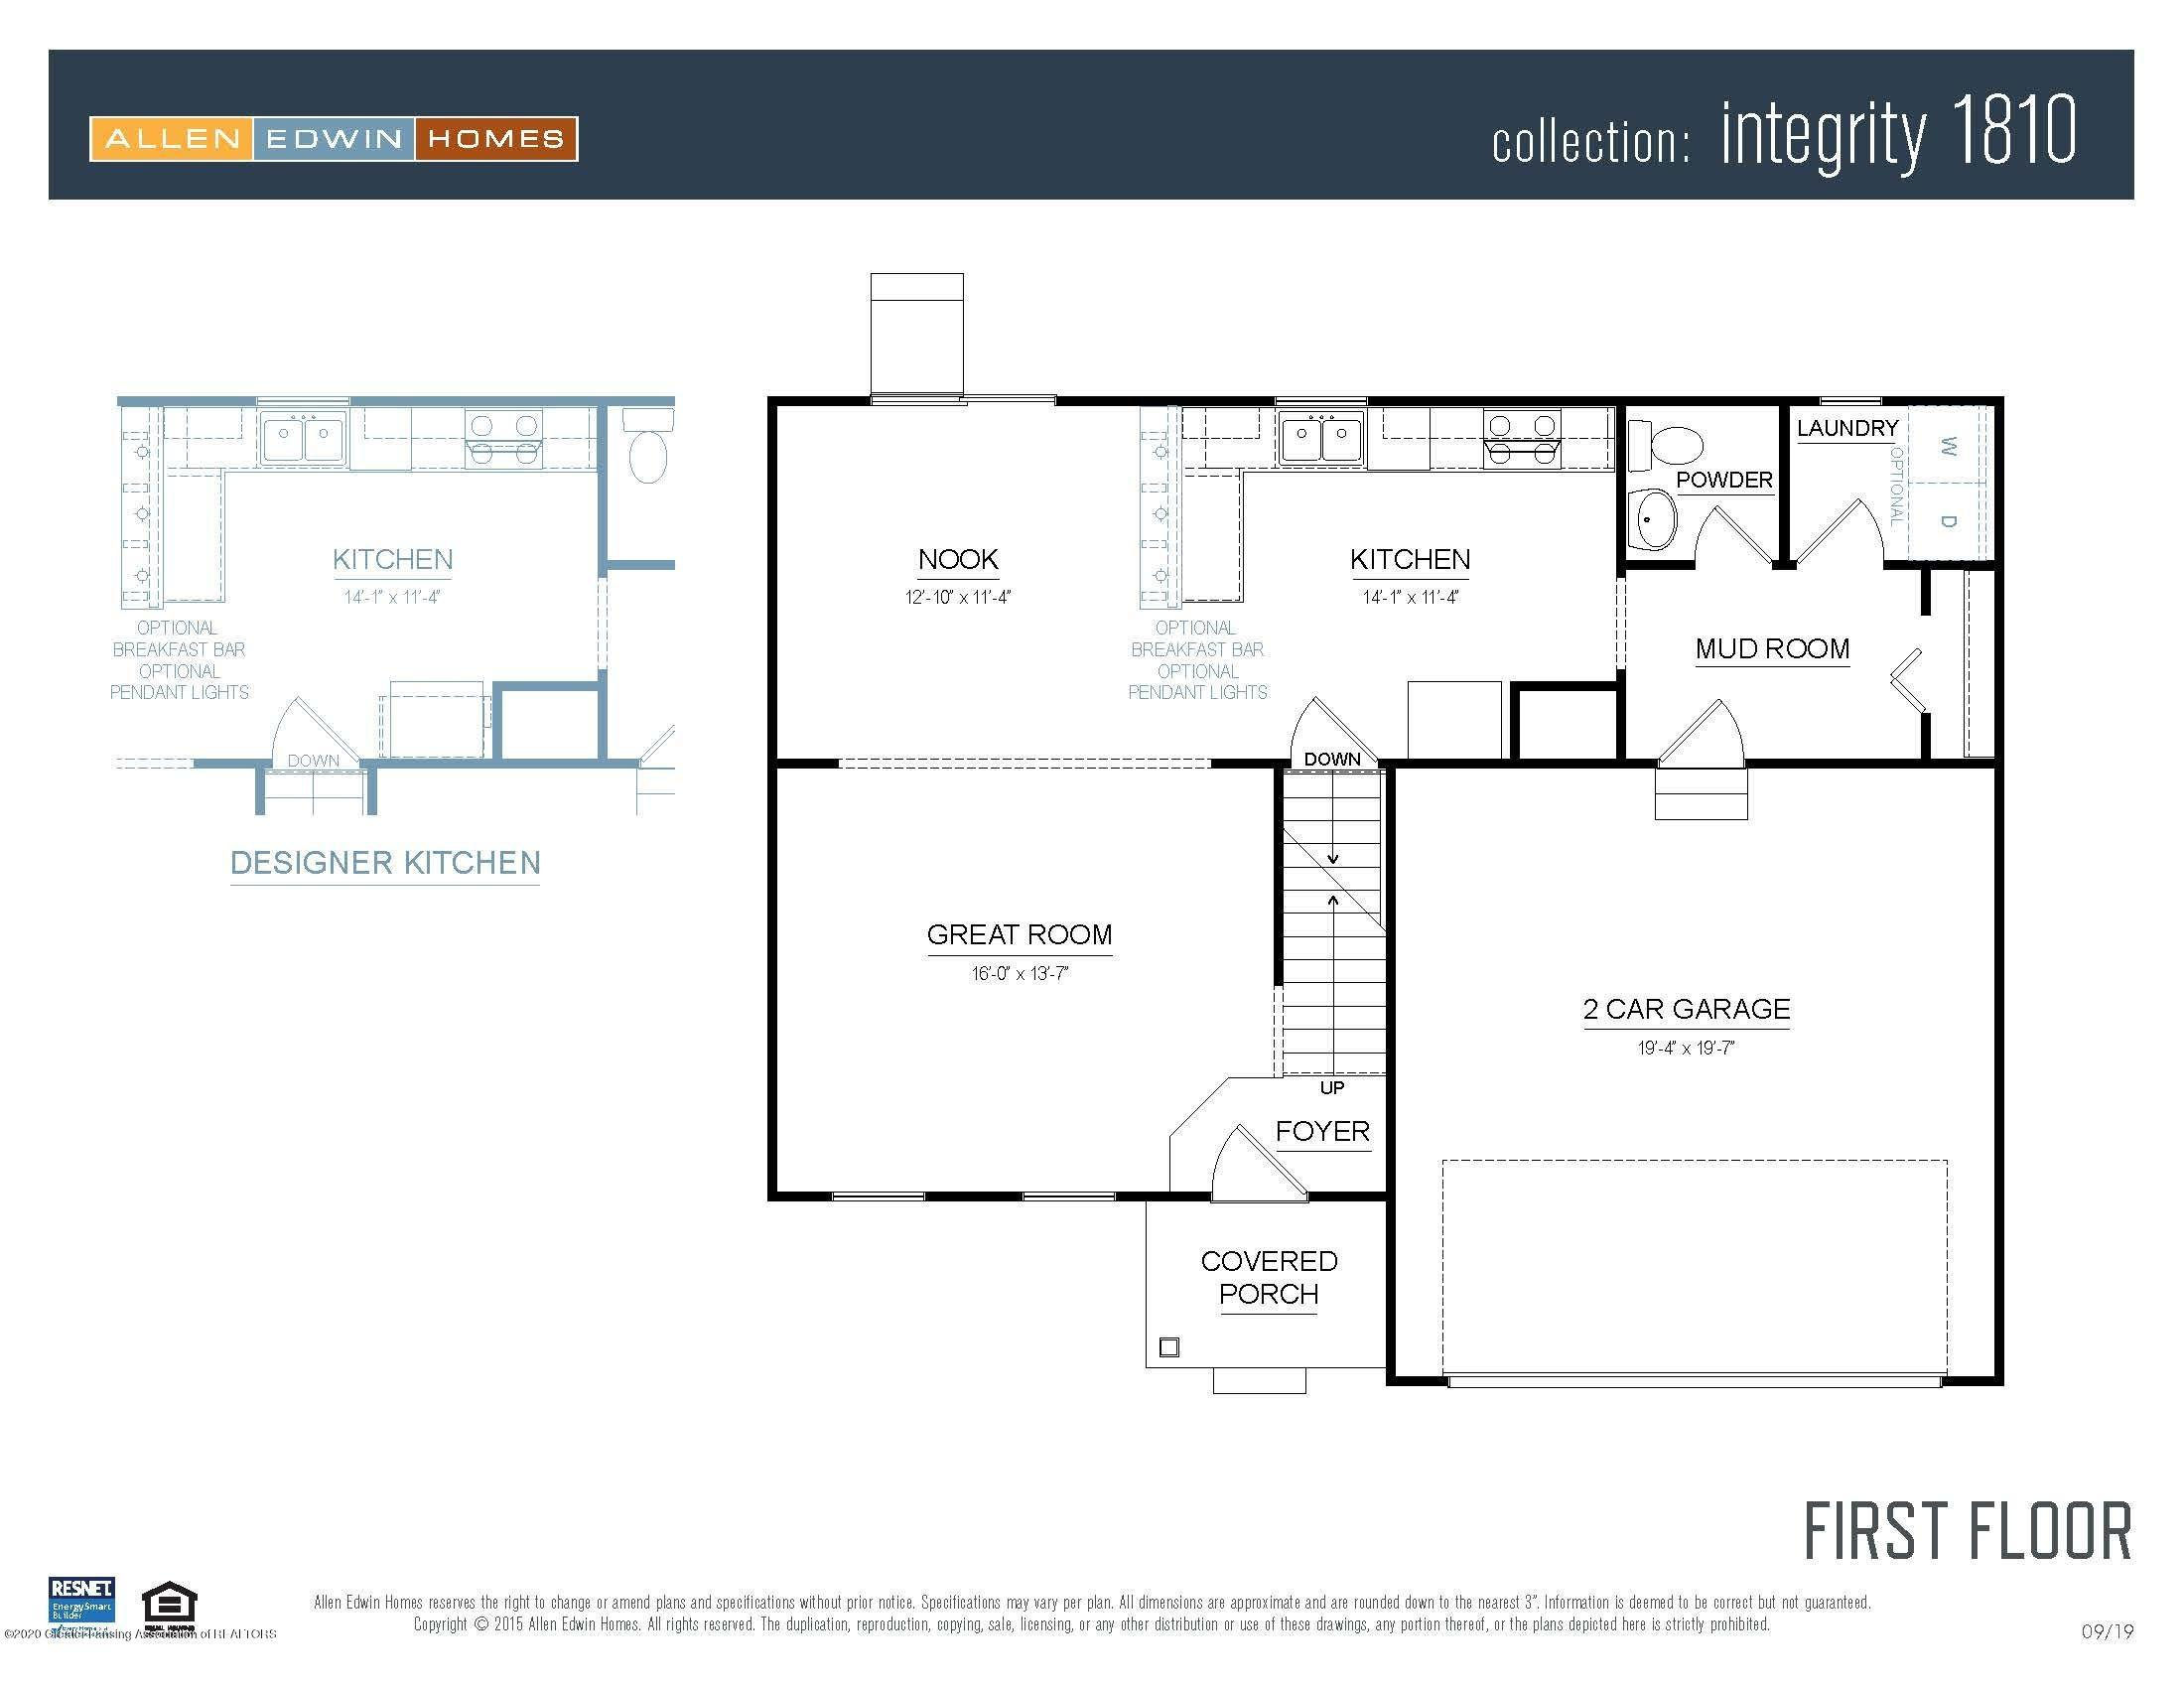 887 St Johns Chase - Integrity 1810 V8.1a First Floor - 20